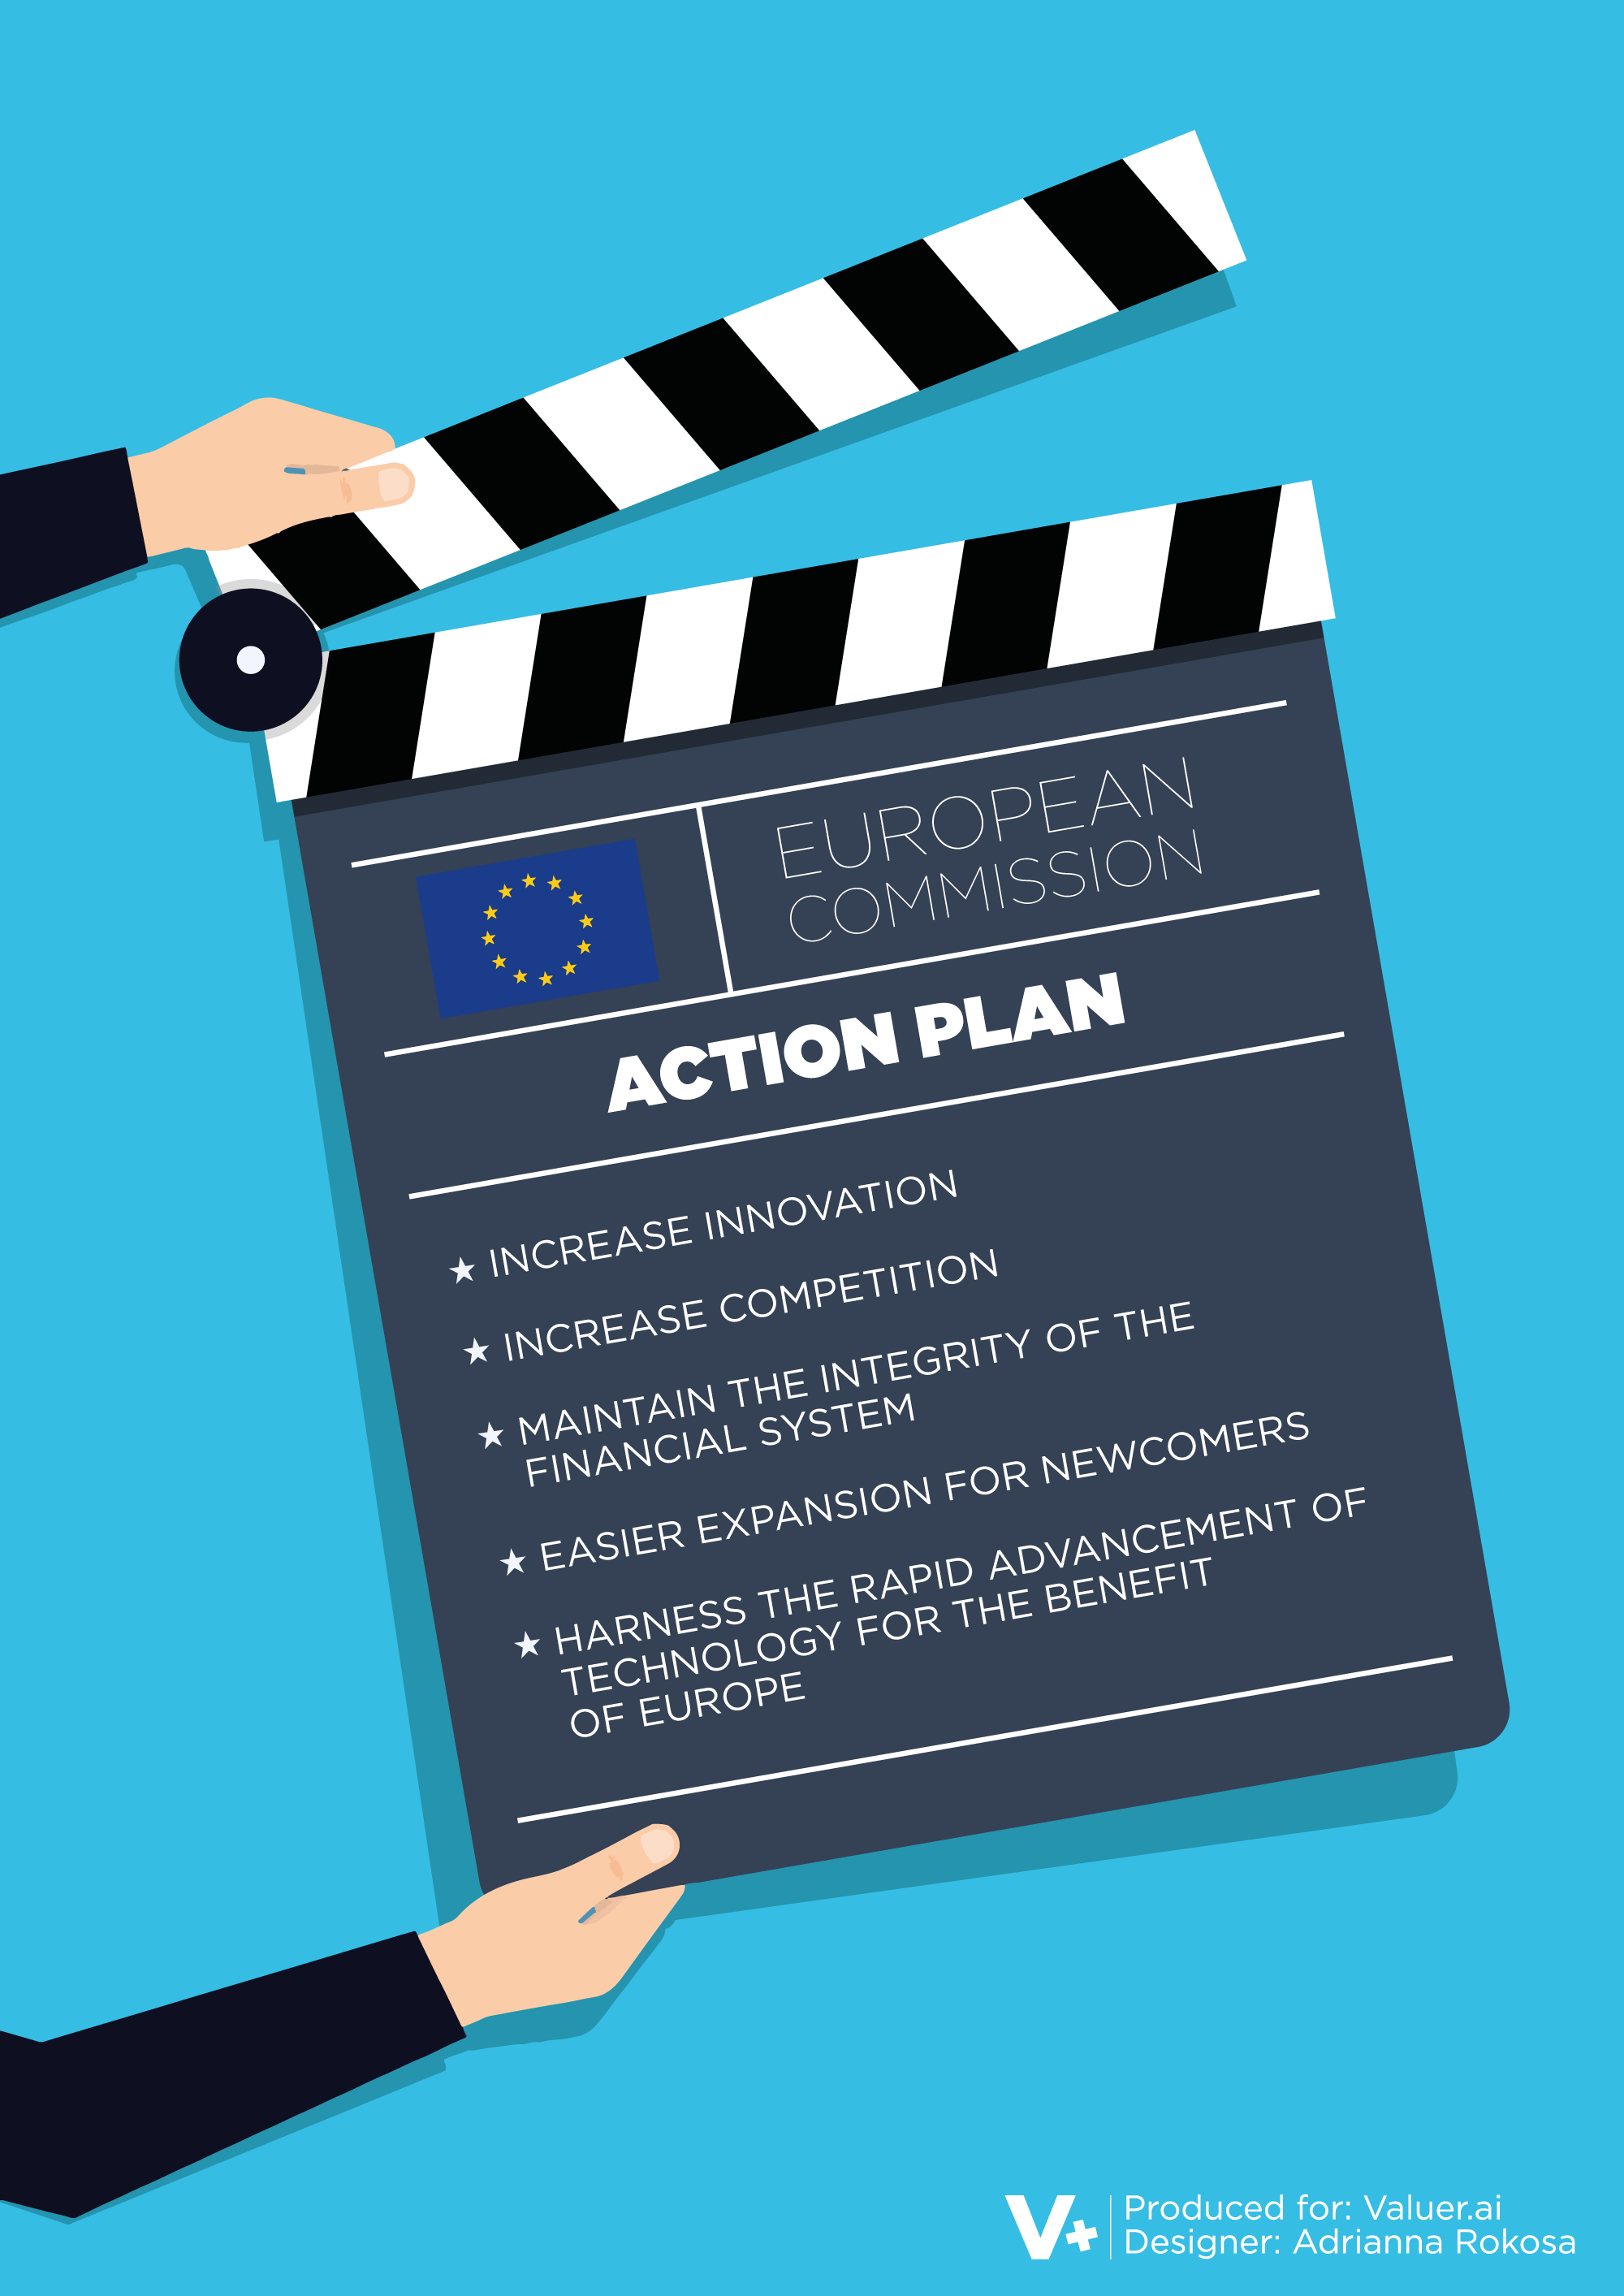 Blue graphic with a European Action Plan